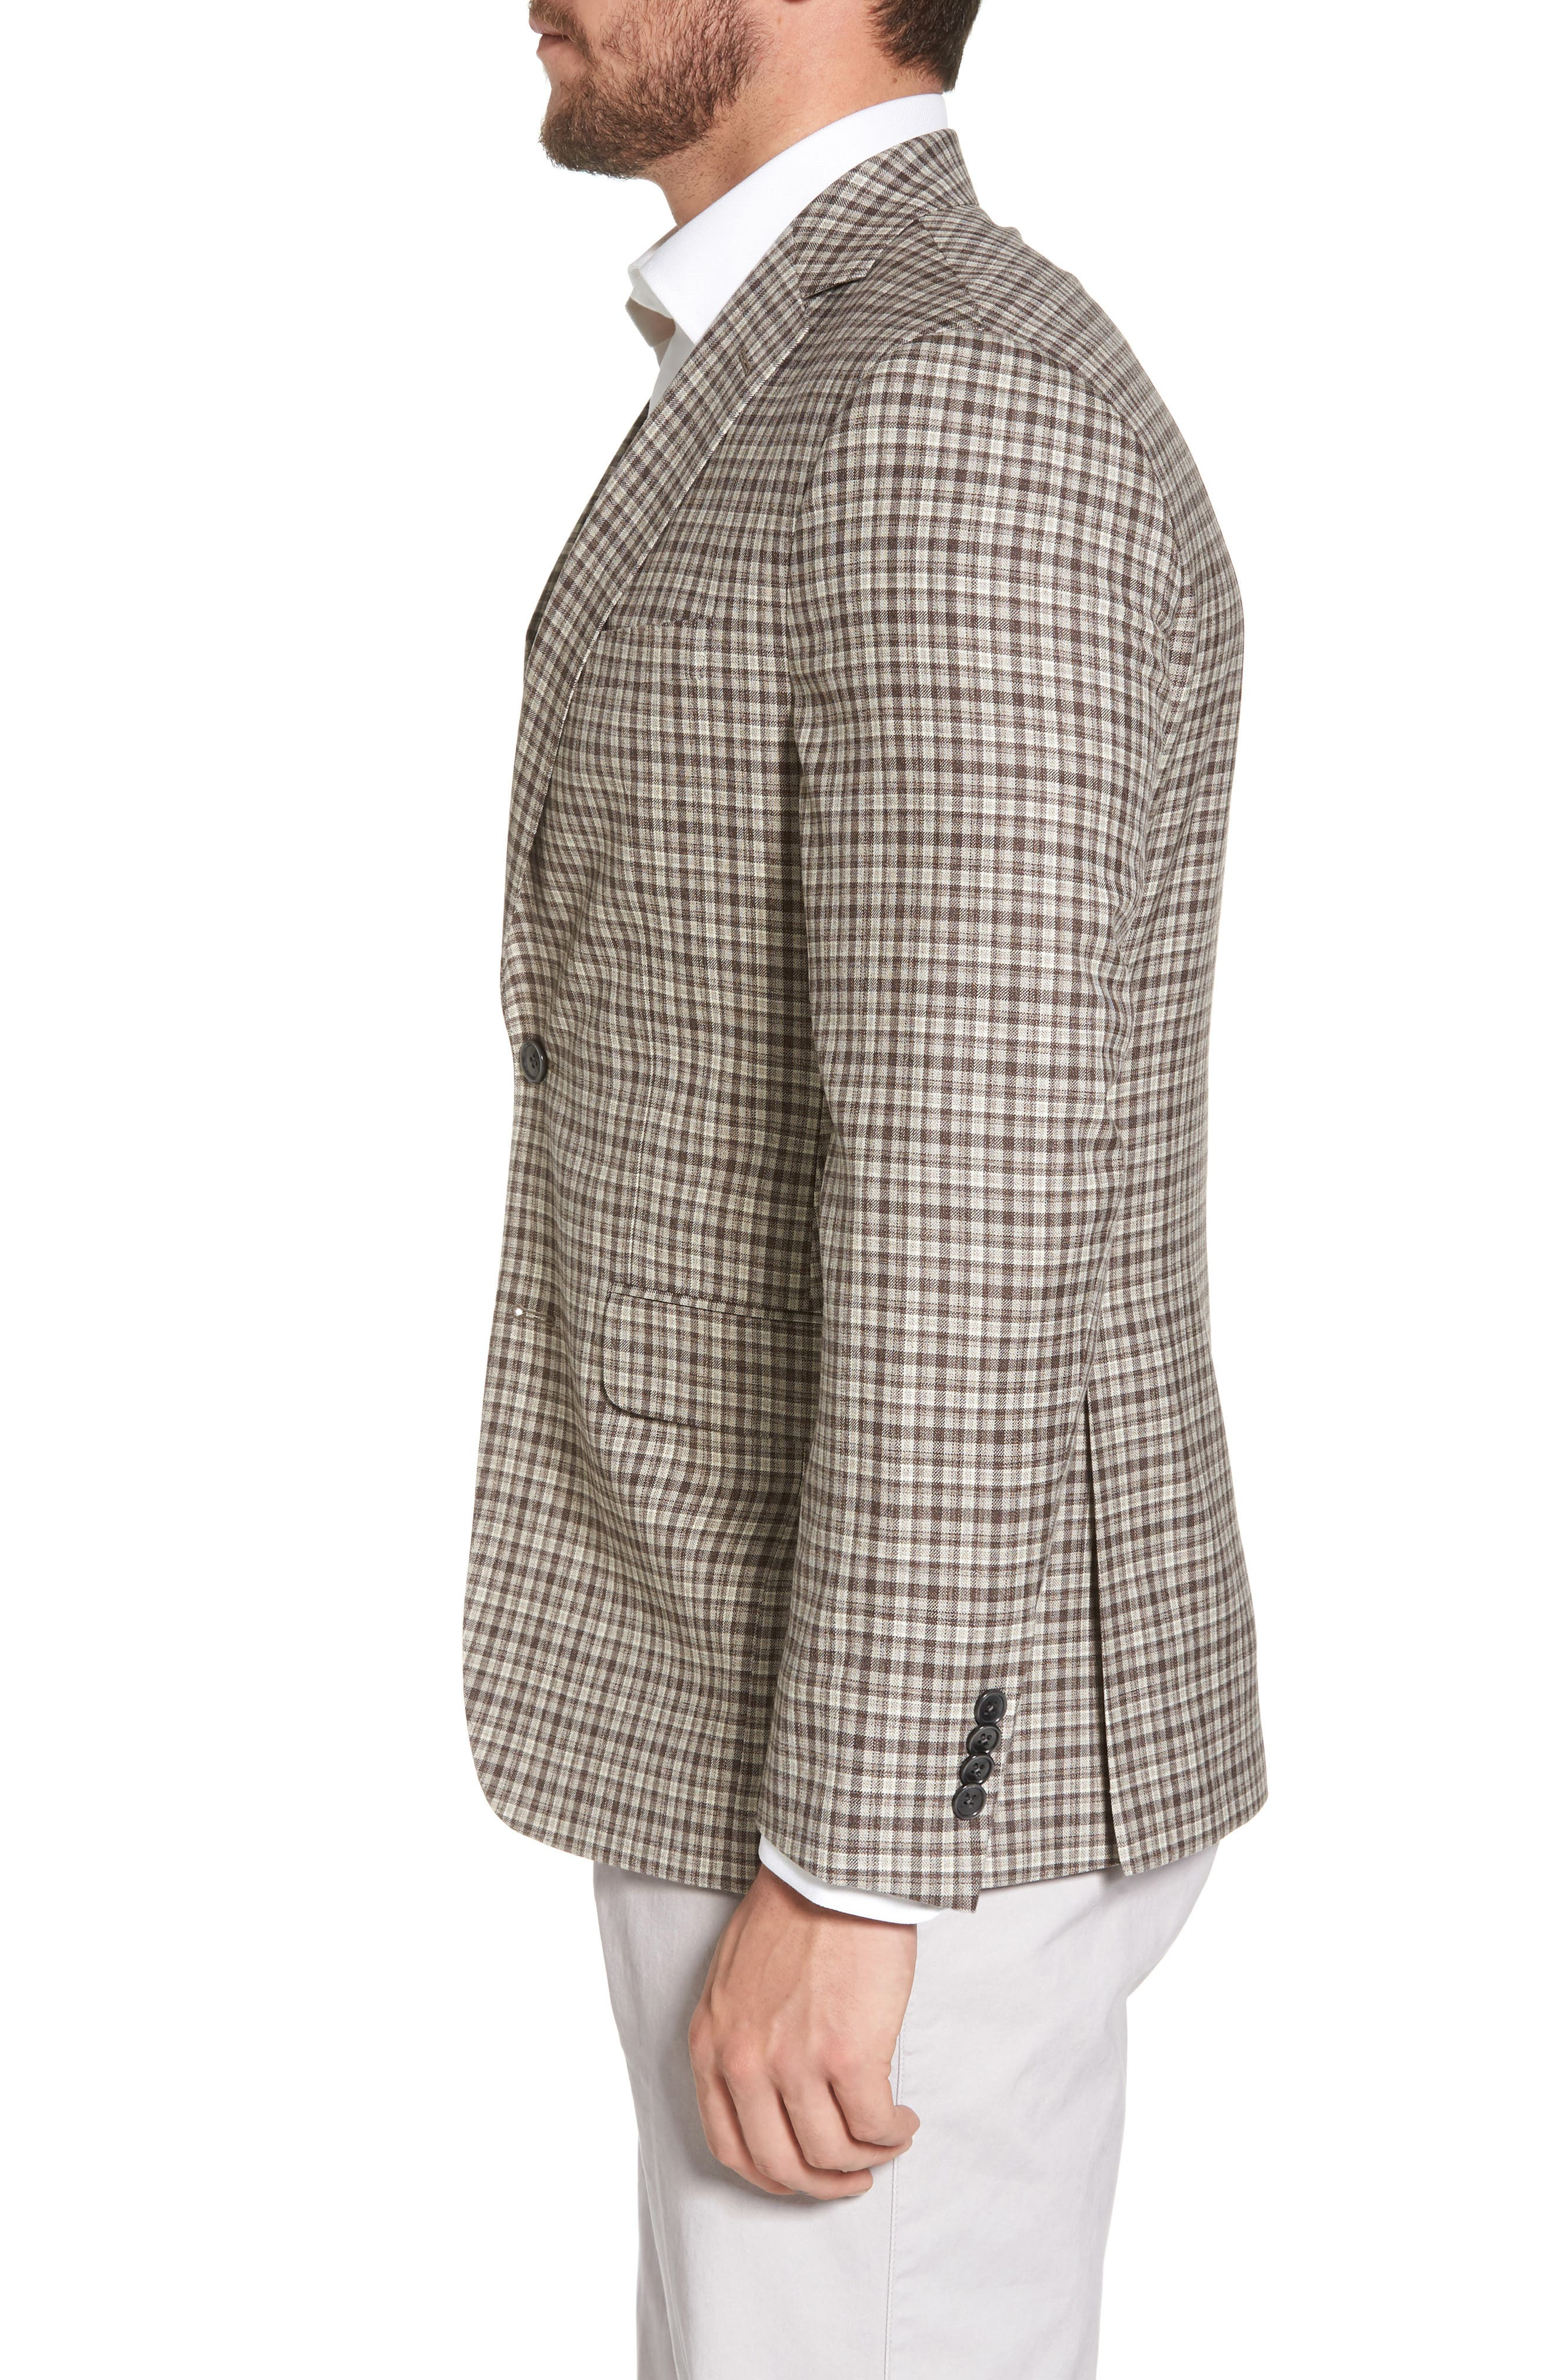 Arnold Classic Fit Plaid Wool Sport Coat,                             Alternate thumbnail 3, color,                             Brown